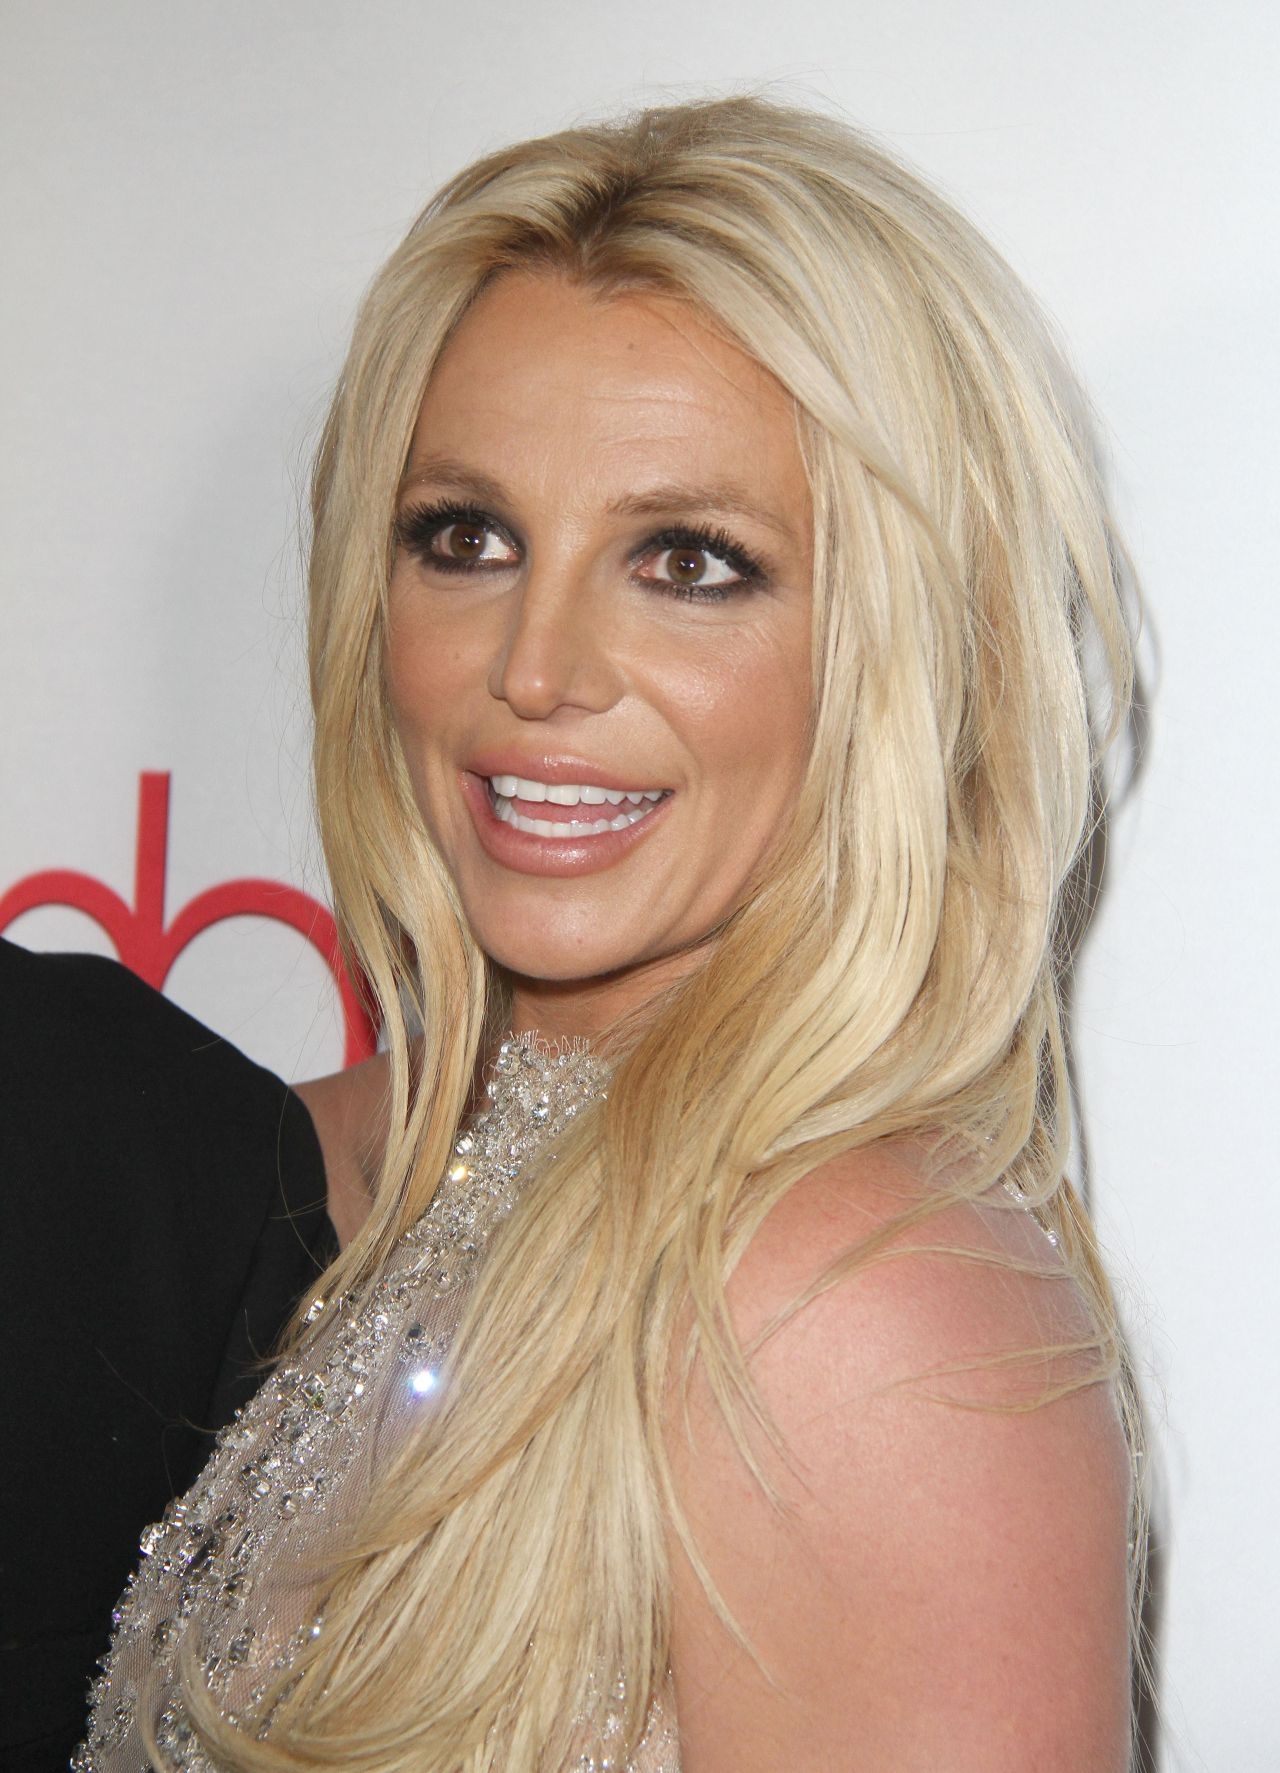 britney-spears-2018-hollywood-beauty-awards-in-la-14.jpg